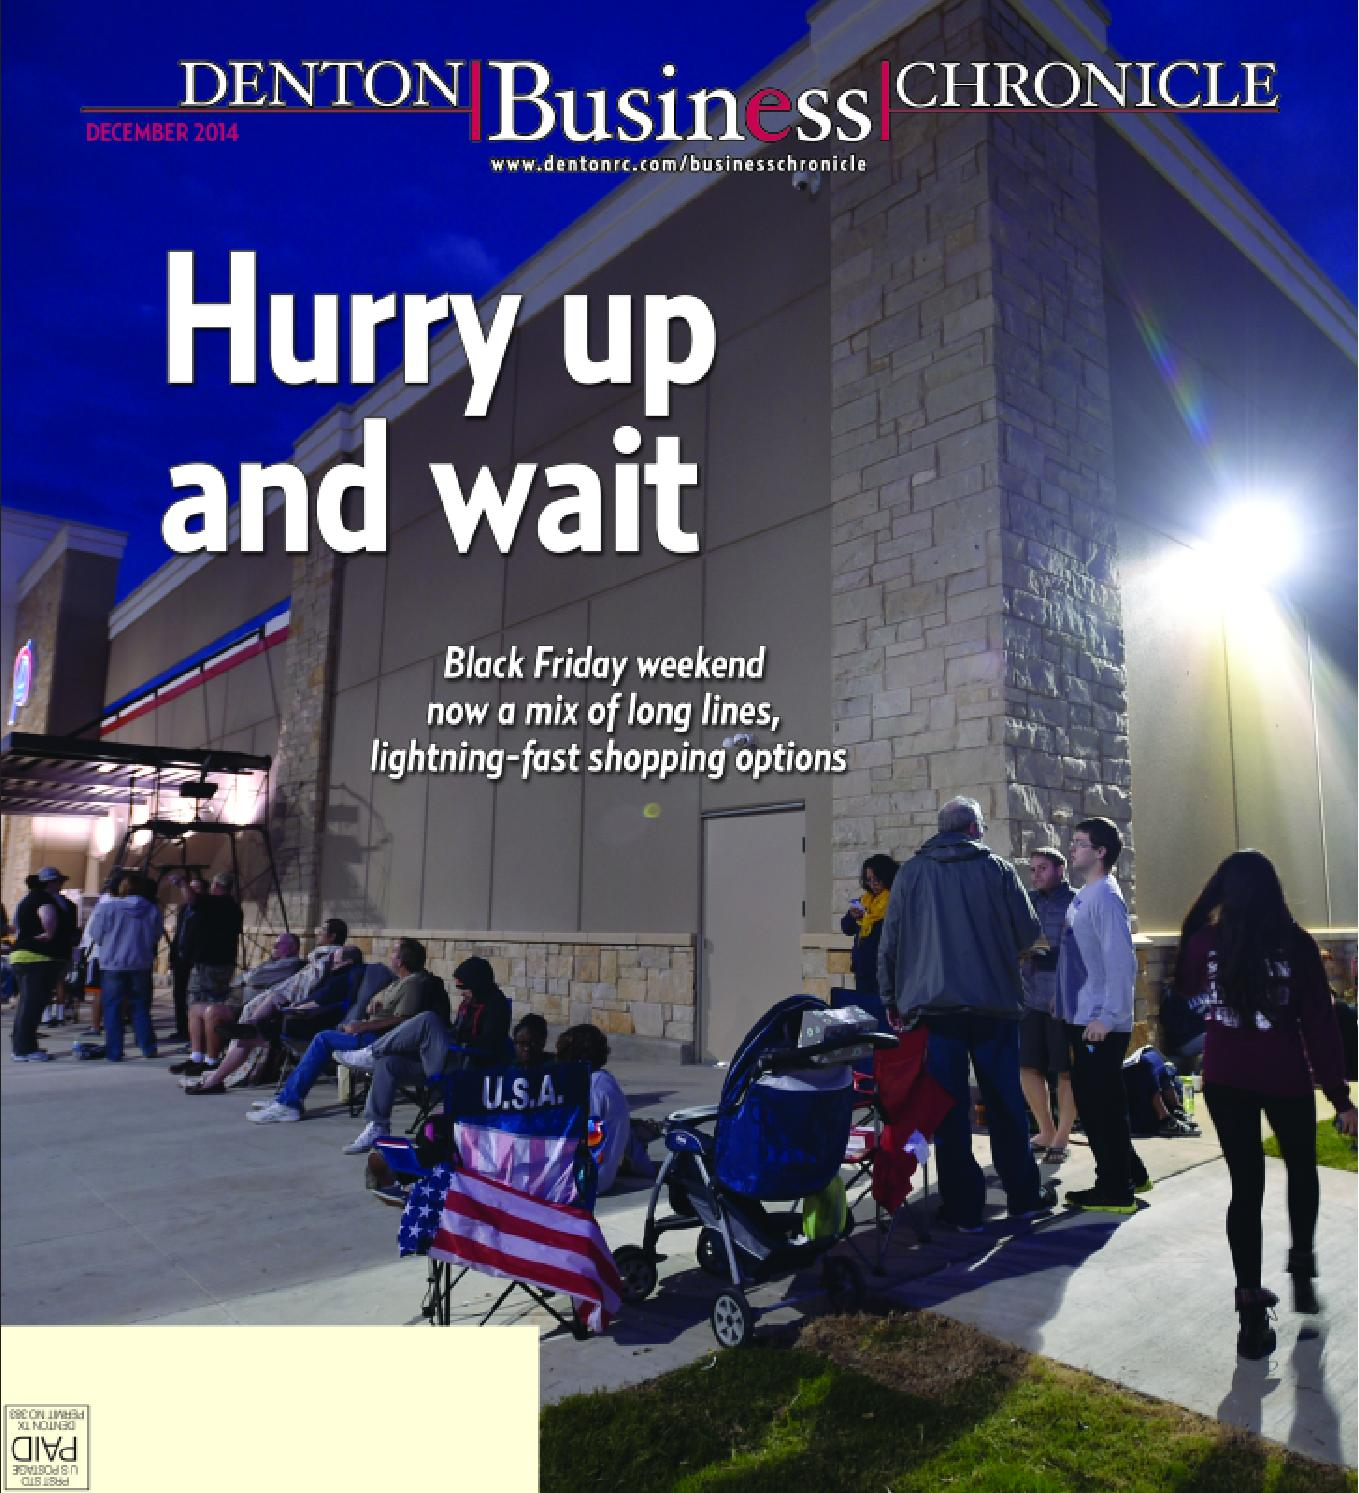 December Denton Business Chronicle 2014 by Larry McBride issuu